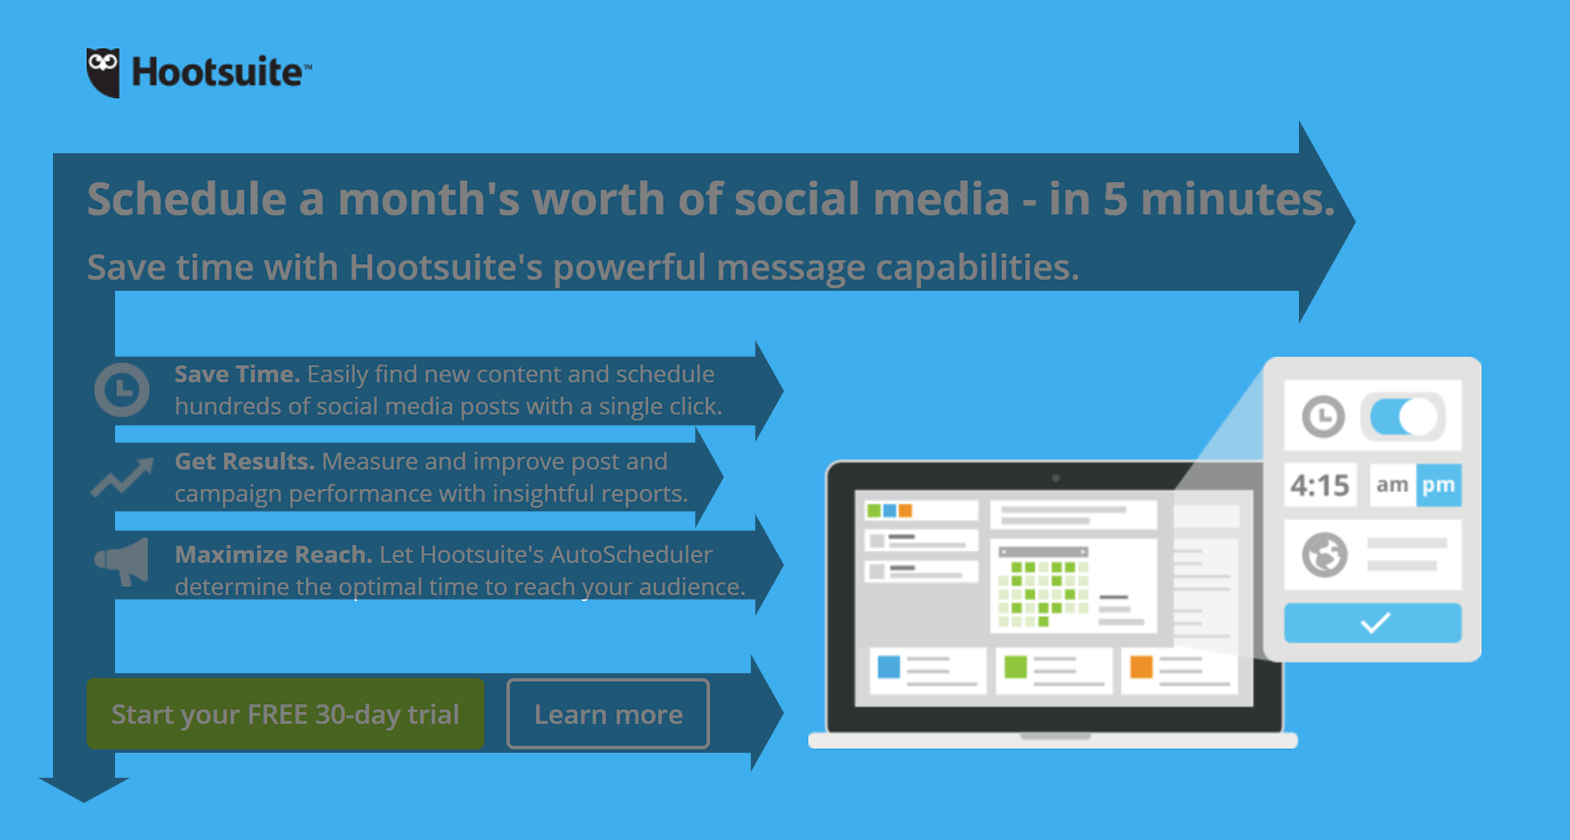 f-pattern-landing-page-example-hootsuite